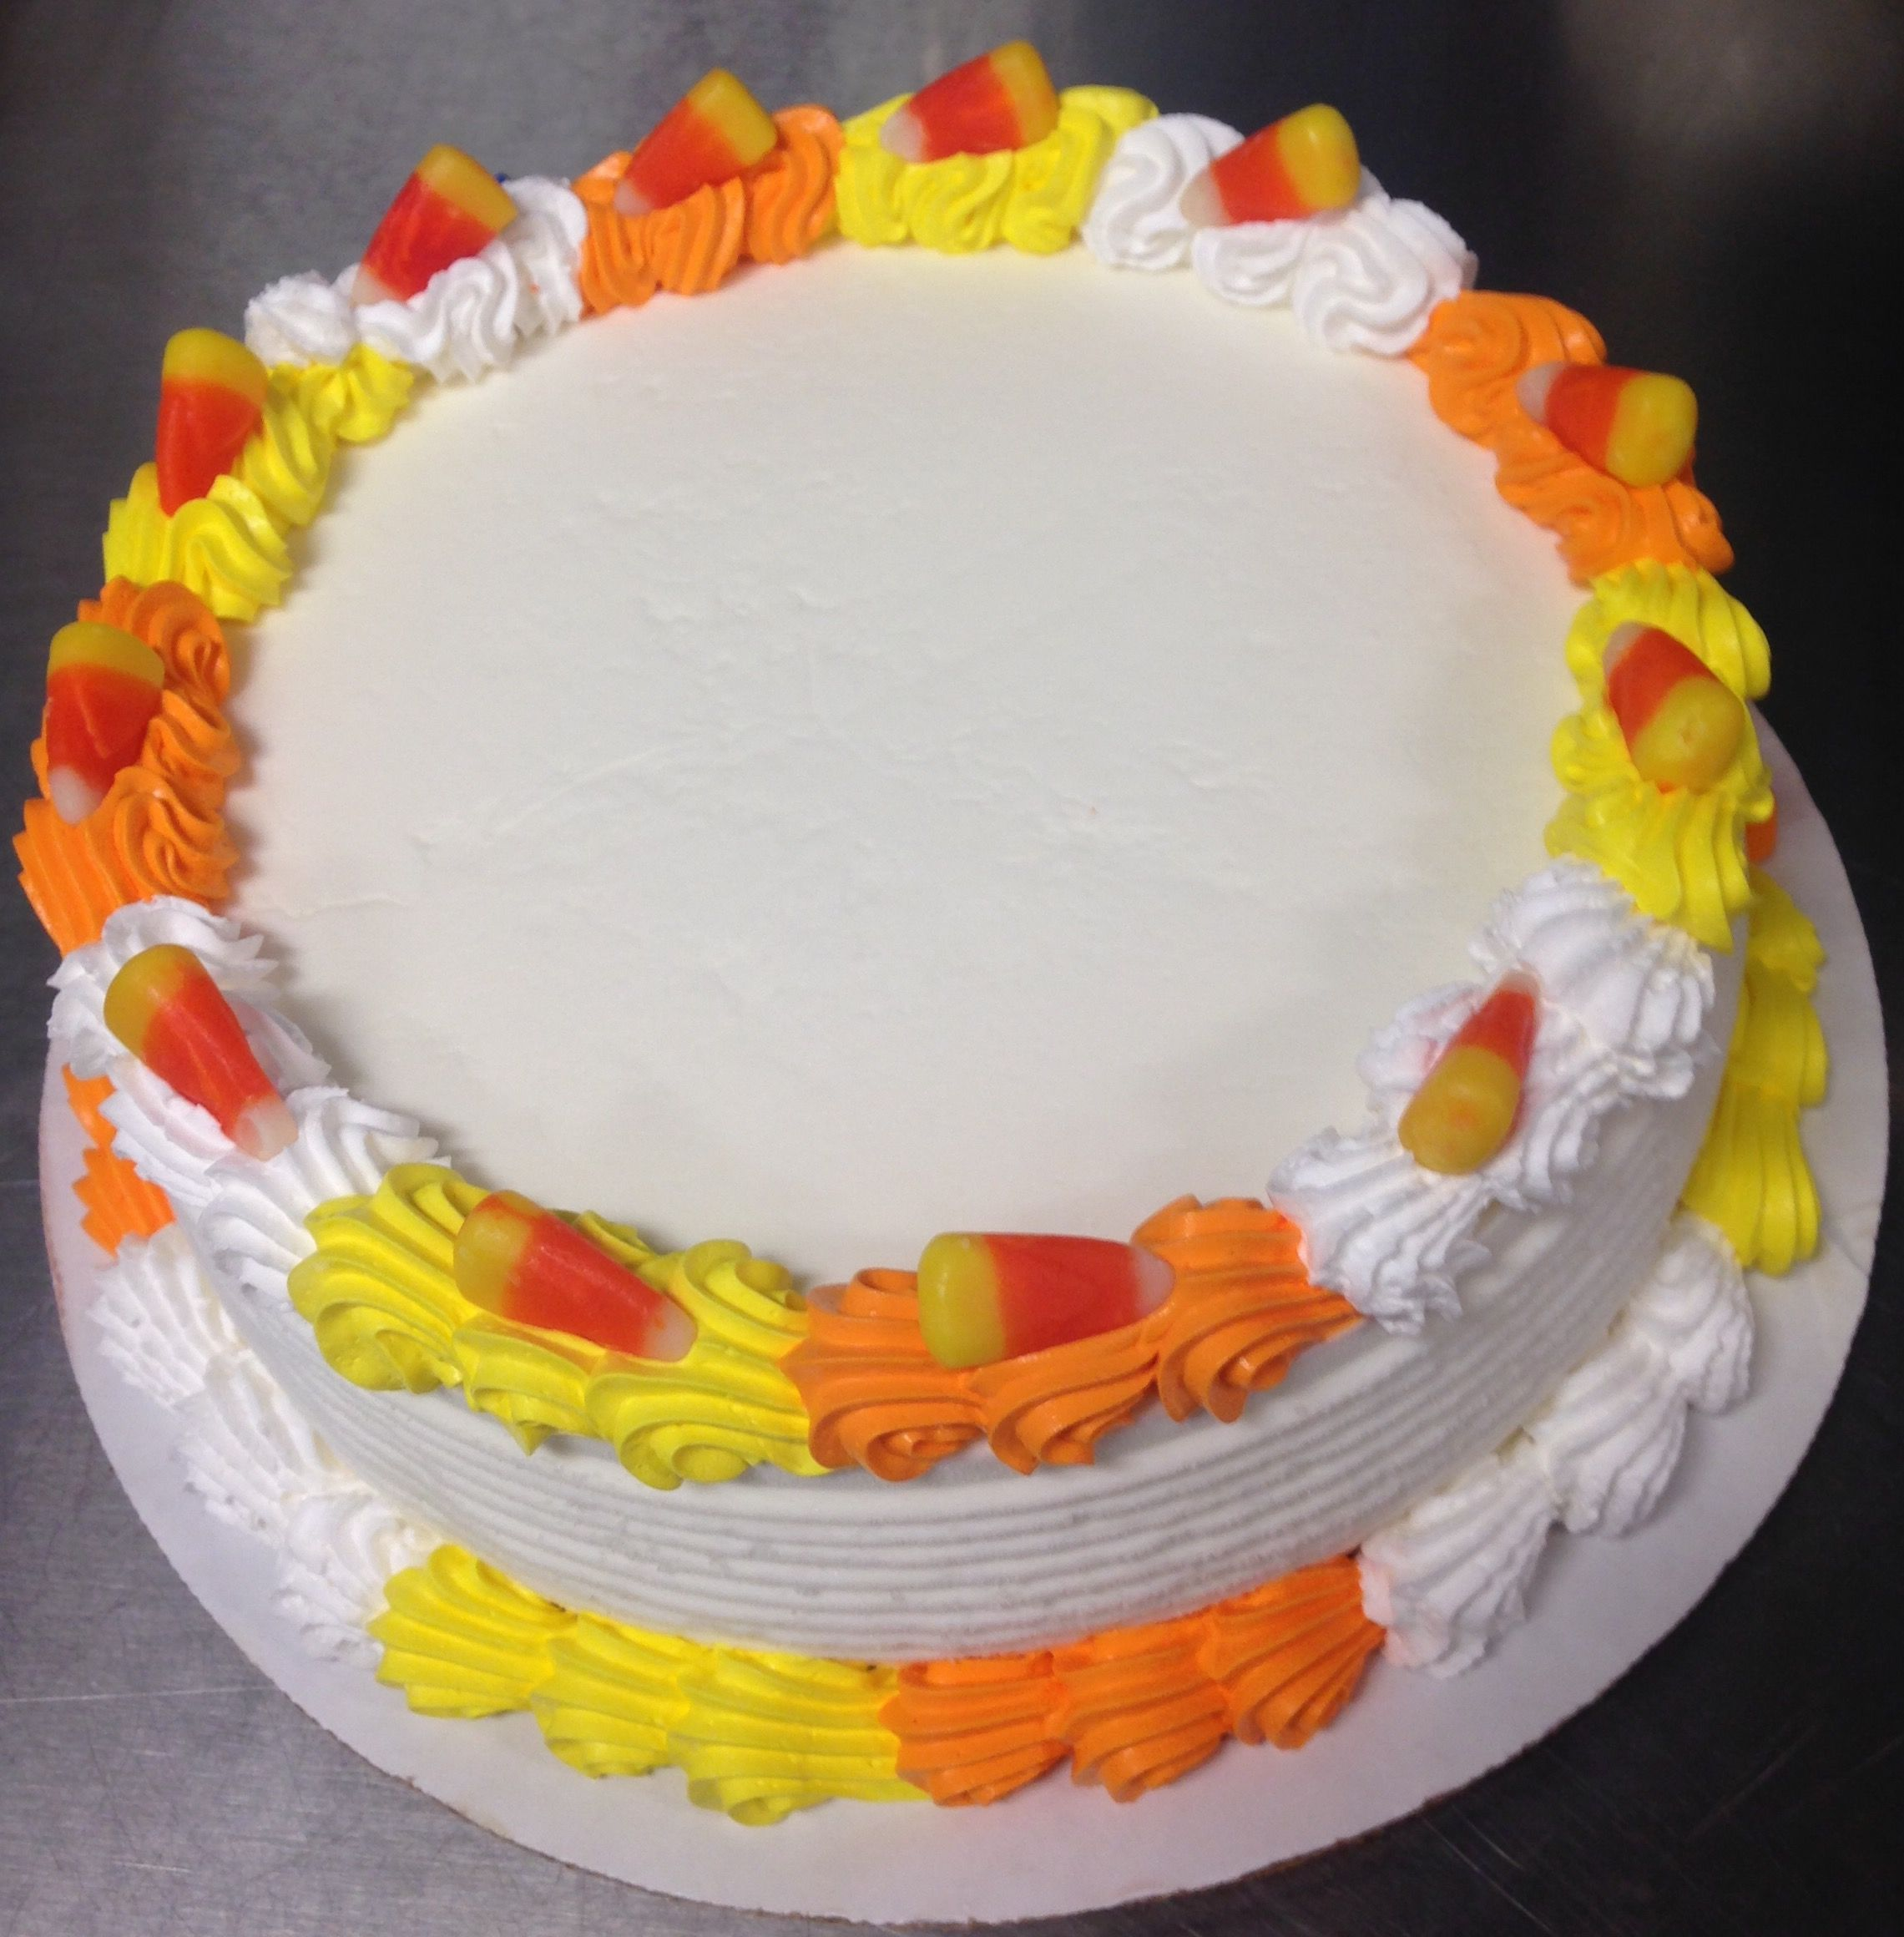 Candy corn border DQ ice cream cake work Pinterest Ice cream - Halloween Cake Decorating Ideas